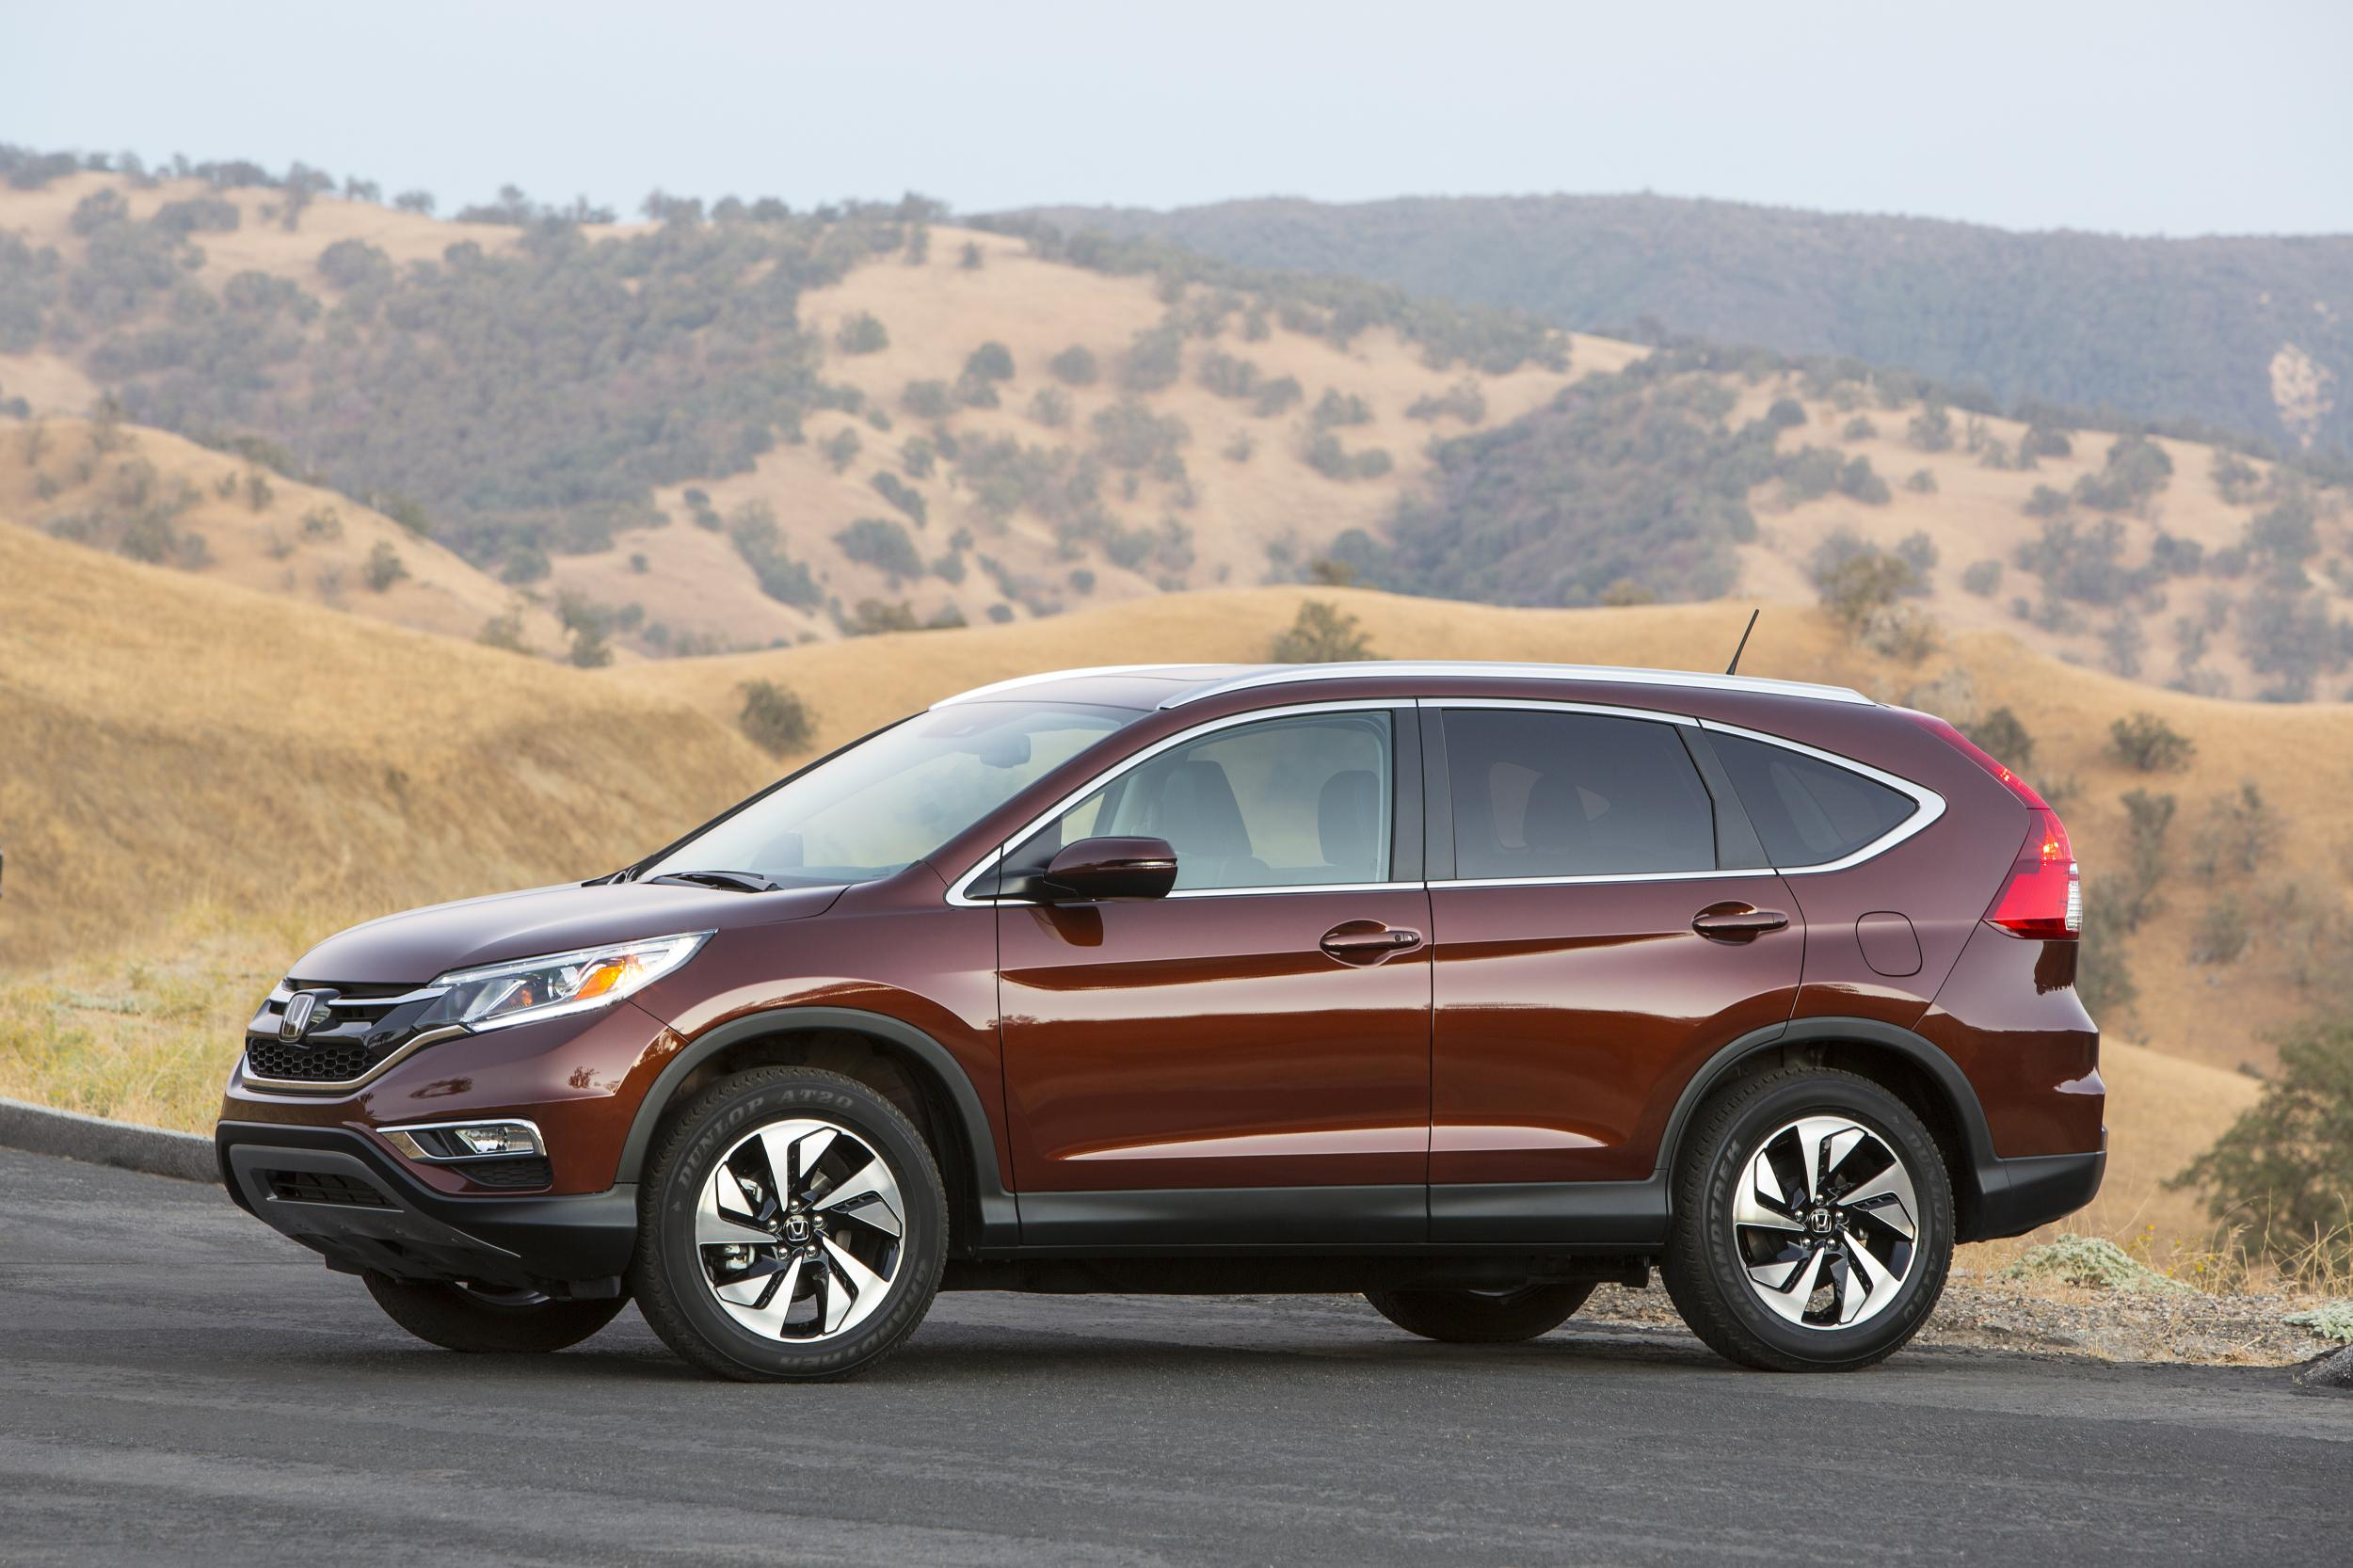 2015 Honda CR-V Facelift Pricing, Specifications Announced